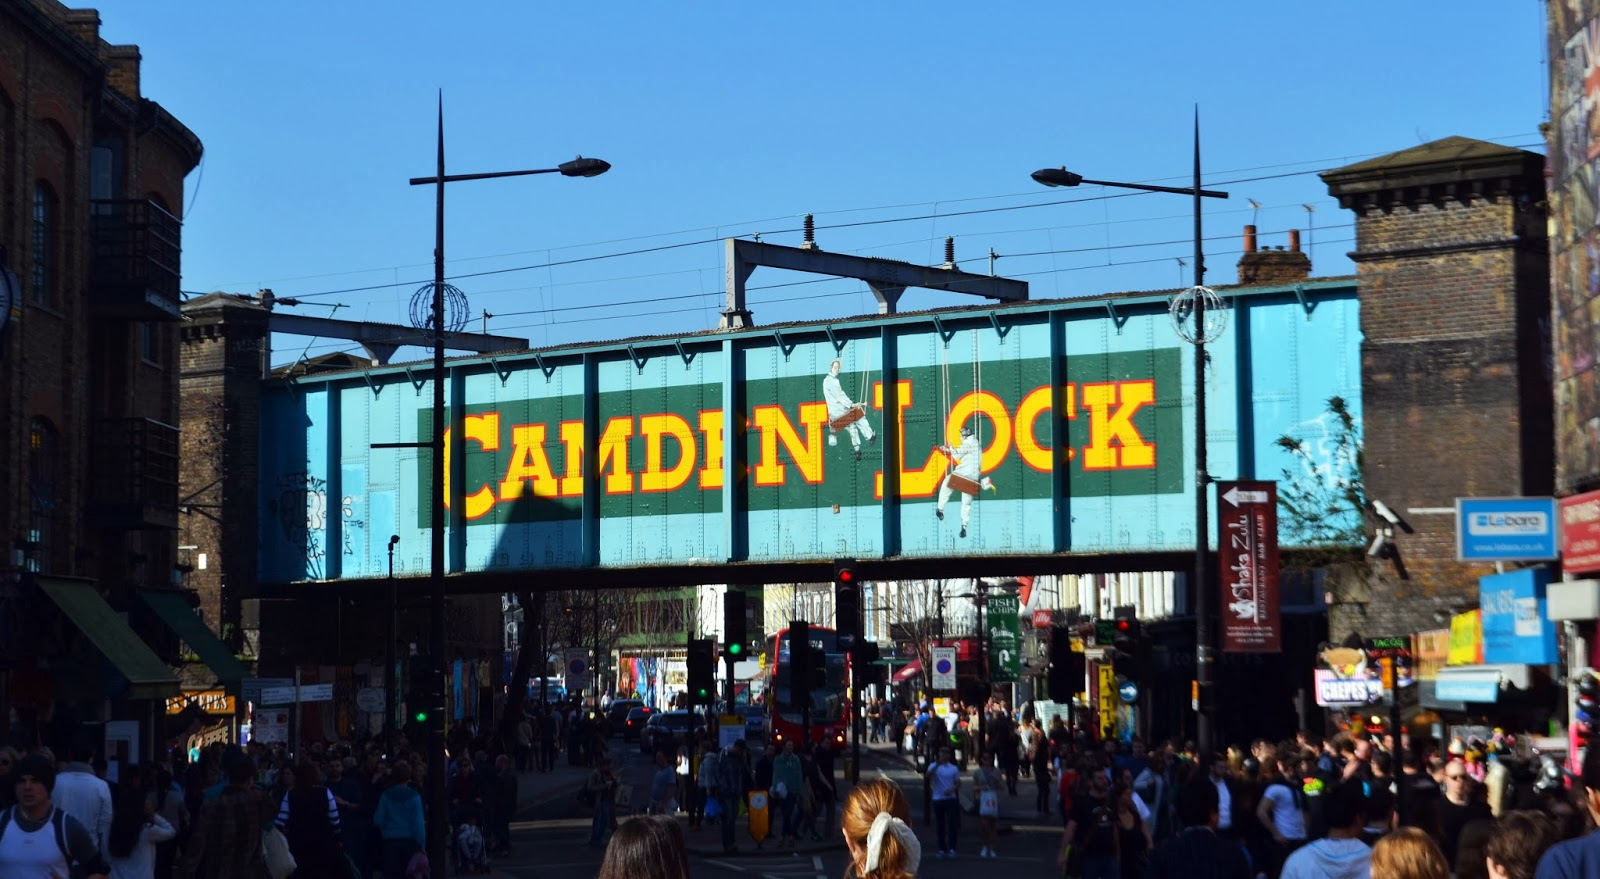 The main Camden Lock sign painting across a blue railway bridge